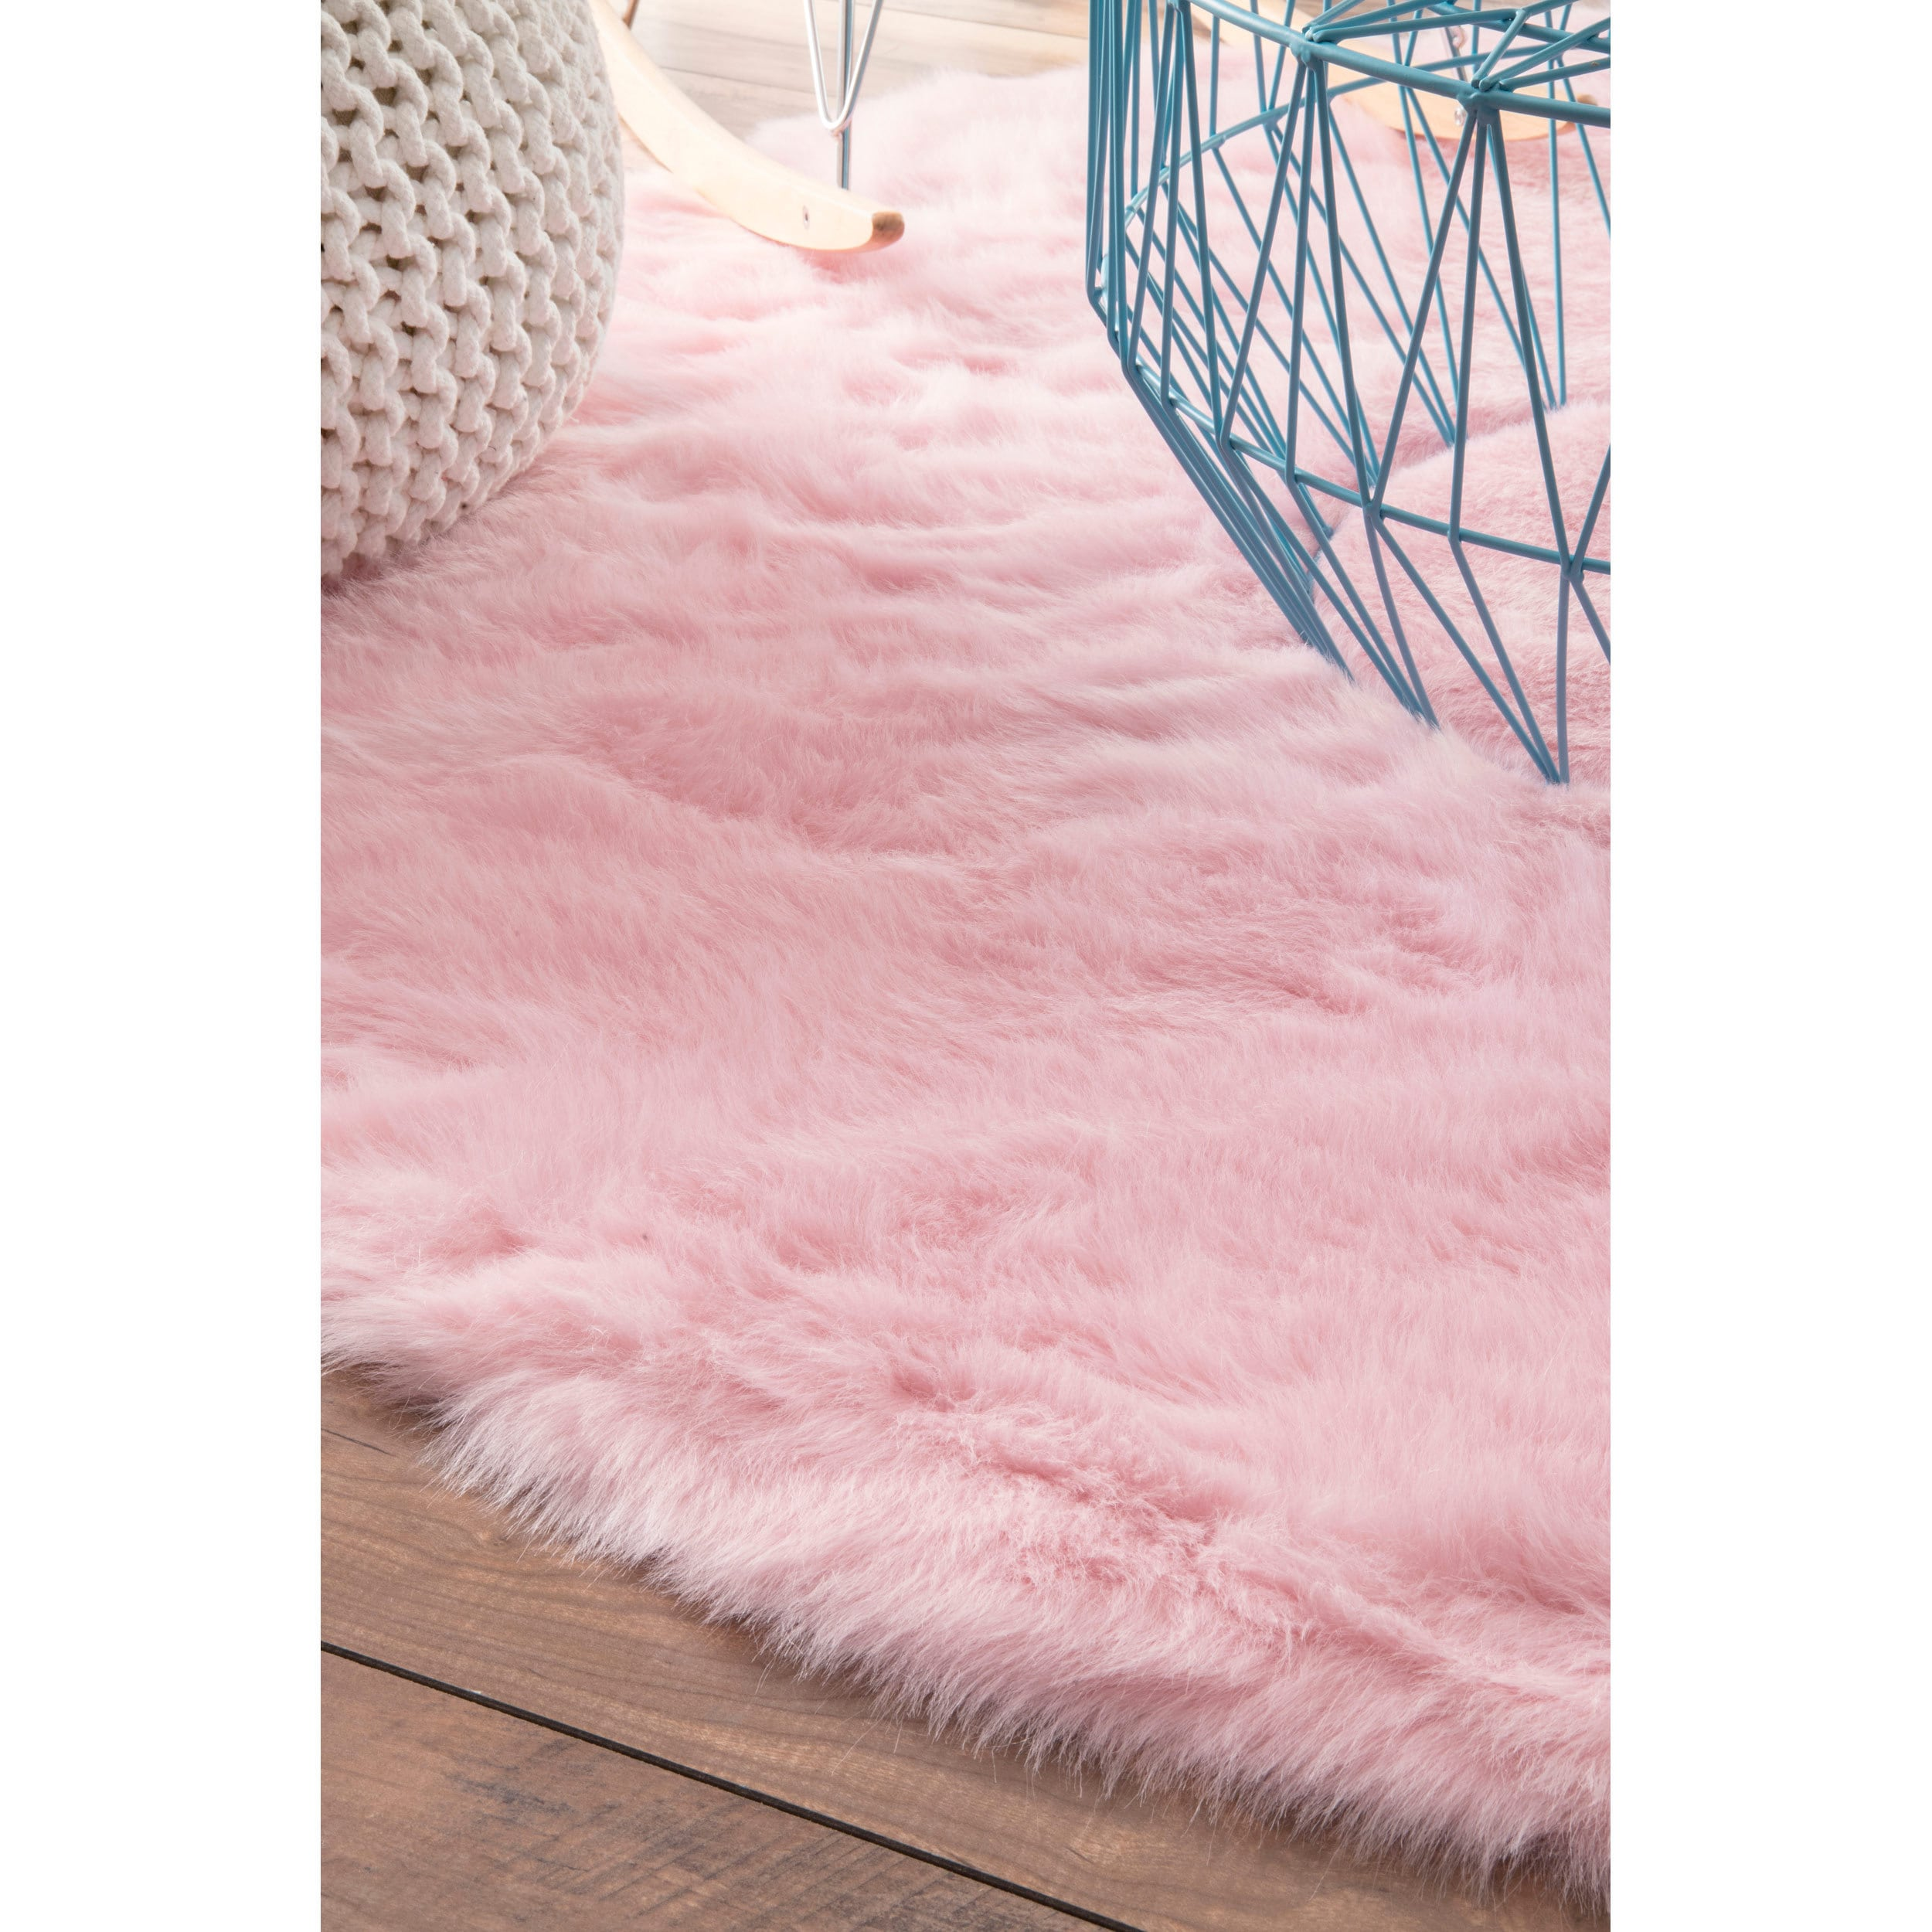 garden home product nuloom free shipping today overstock handmade modern rugs rug for nursery pink x round clouds kids